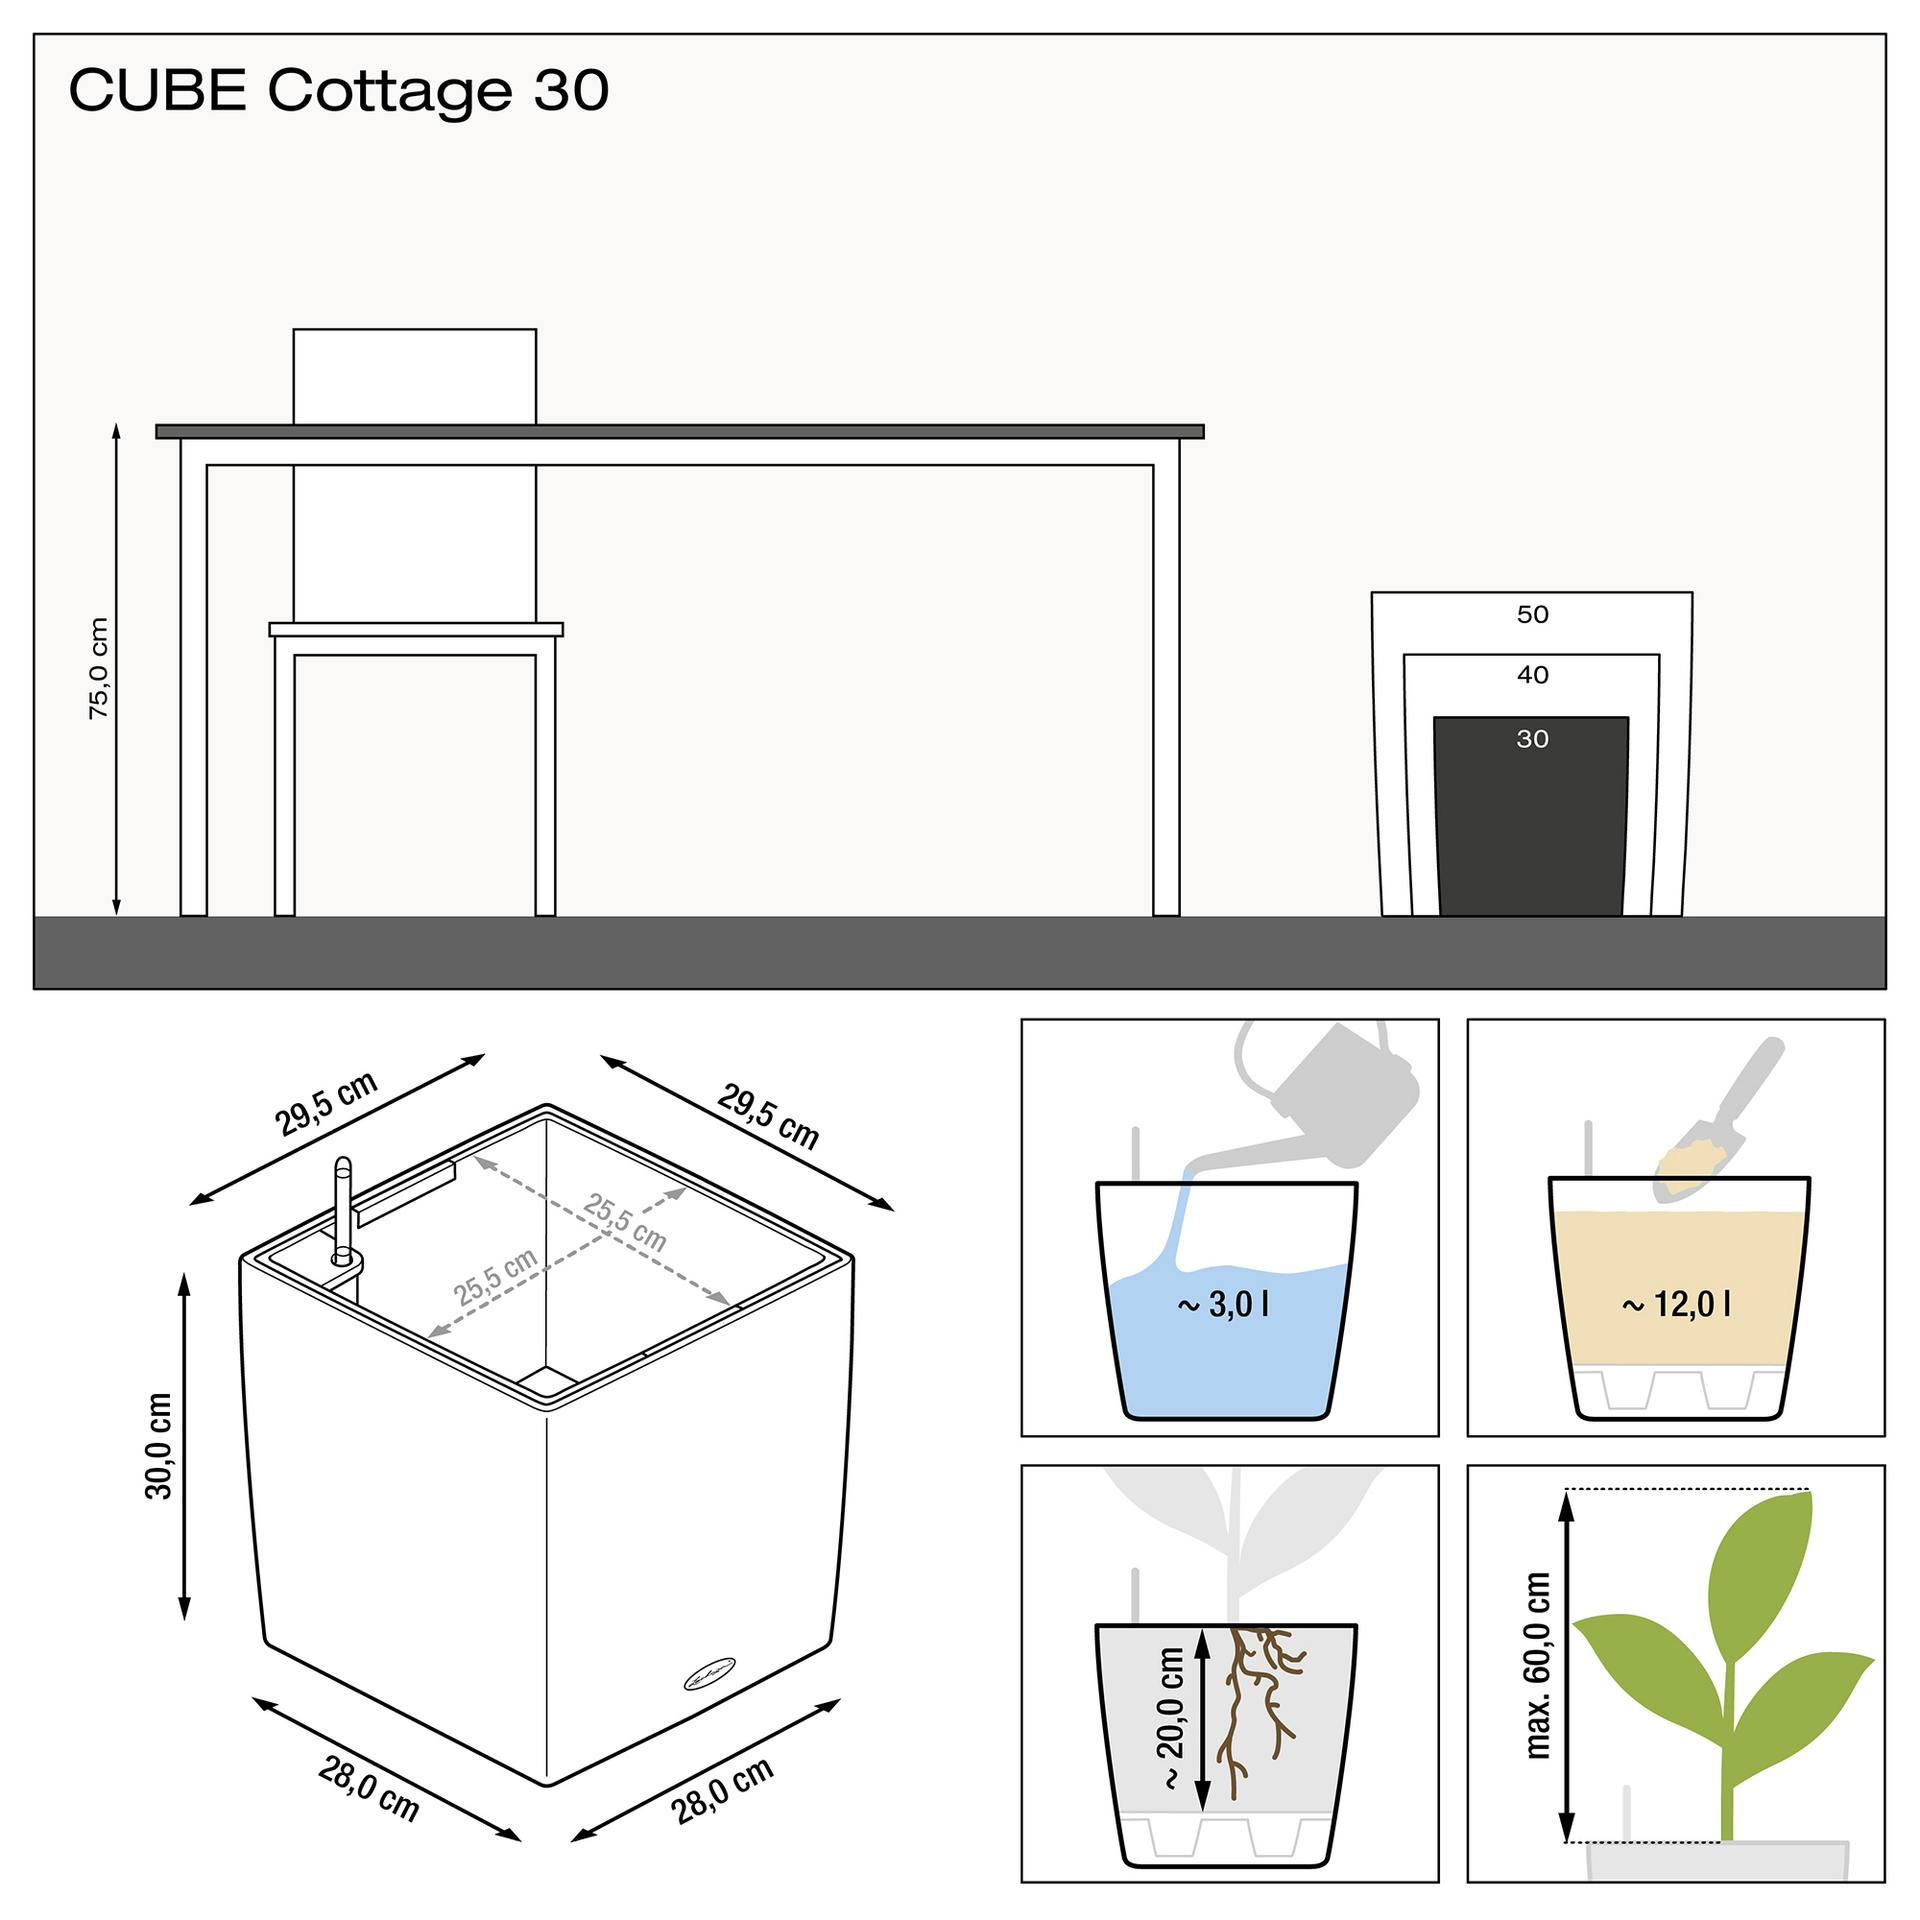 le_cube-cottage30_product_addi_nz